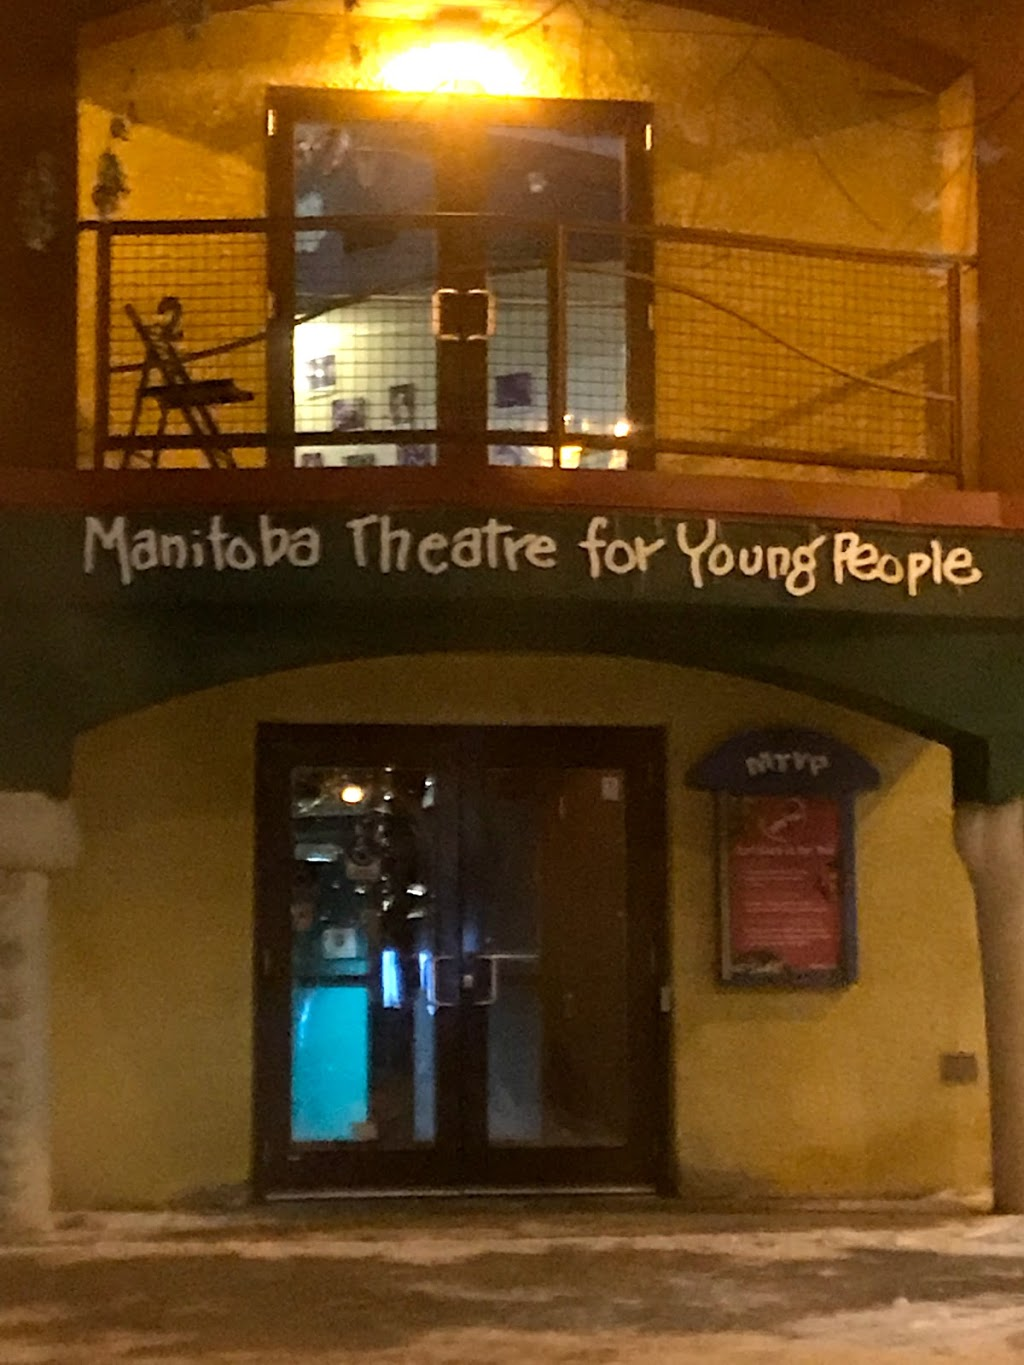 Manitoba Theatre for Young People (MTYP) | university | 2 Forks Market Rd, Winnipeg, MB R3C 4X1, Canada | 2049470394 OR +1 204-947-0394